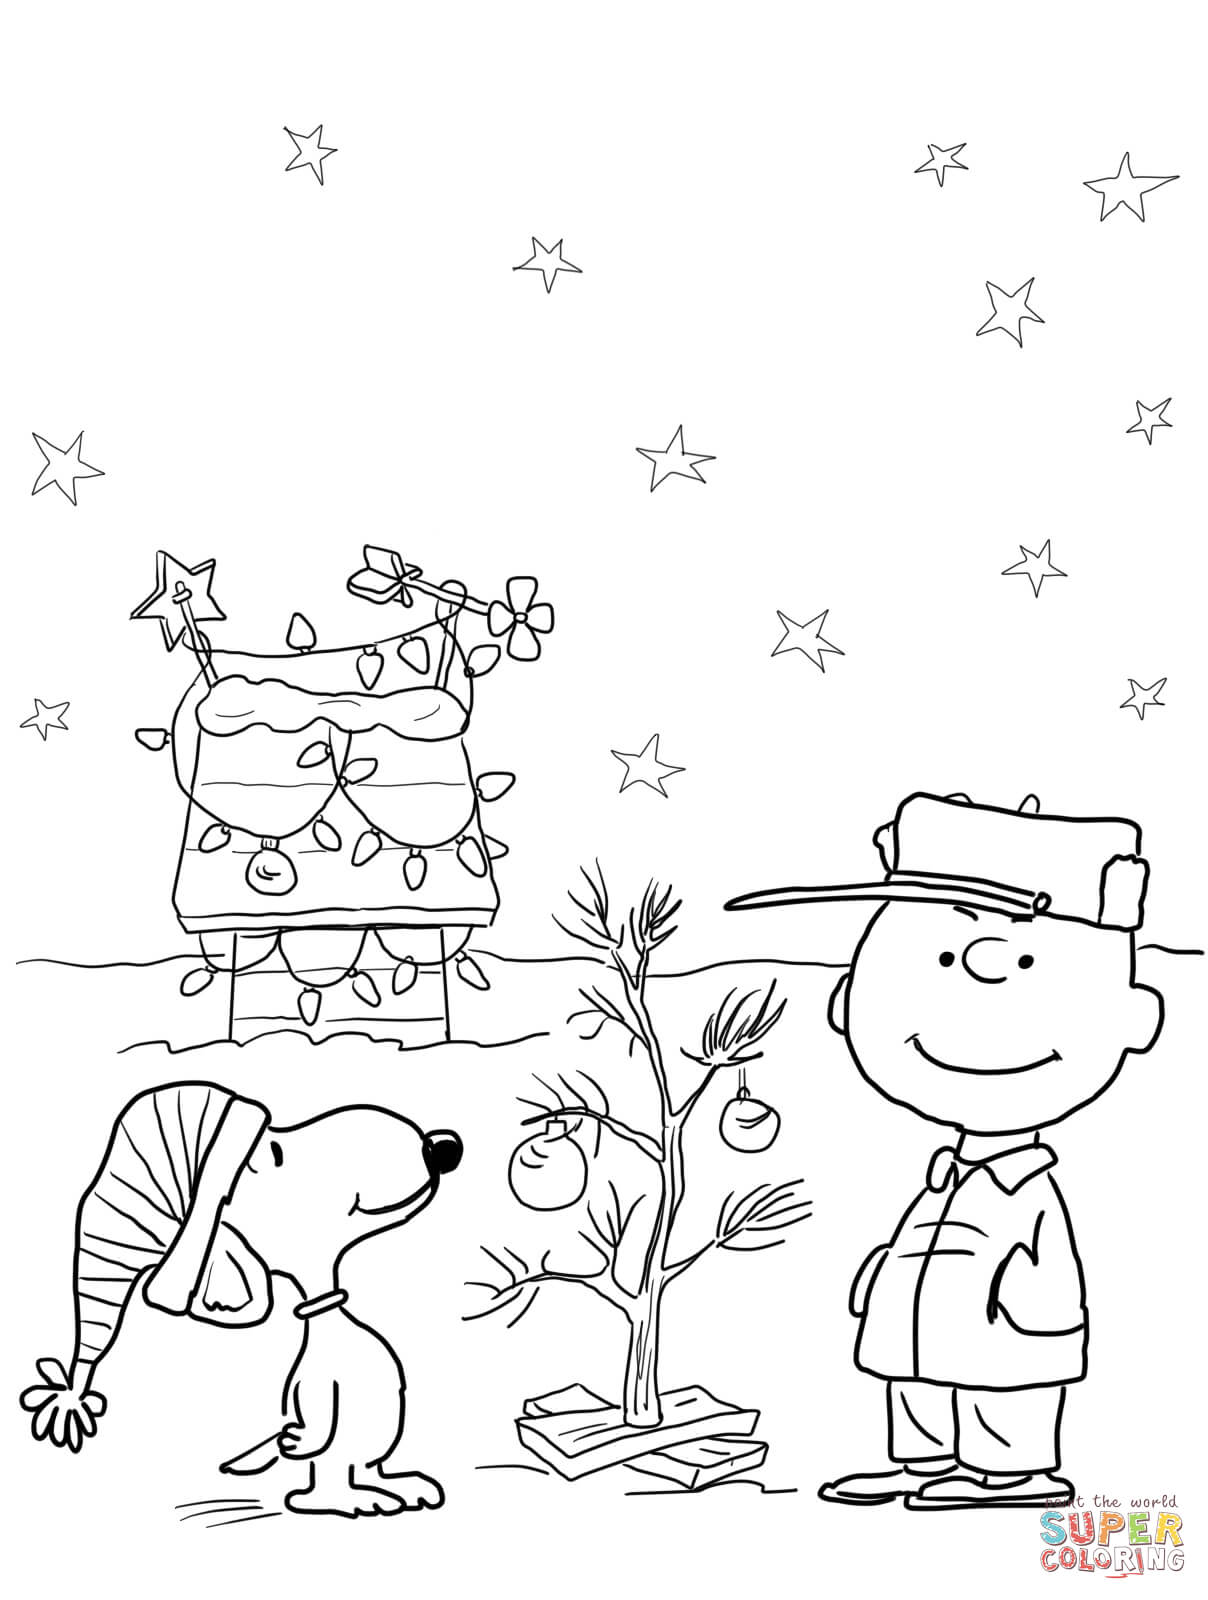 Christmas Drawing To Print at GetDrawings.com | Free for personal ...